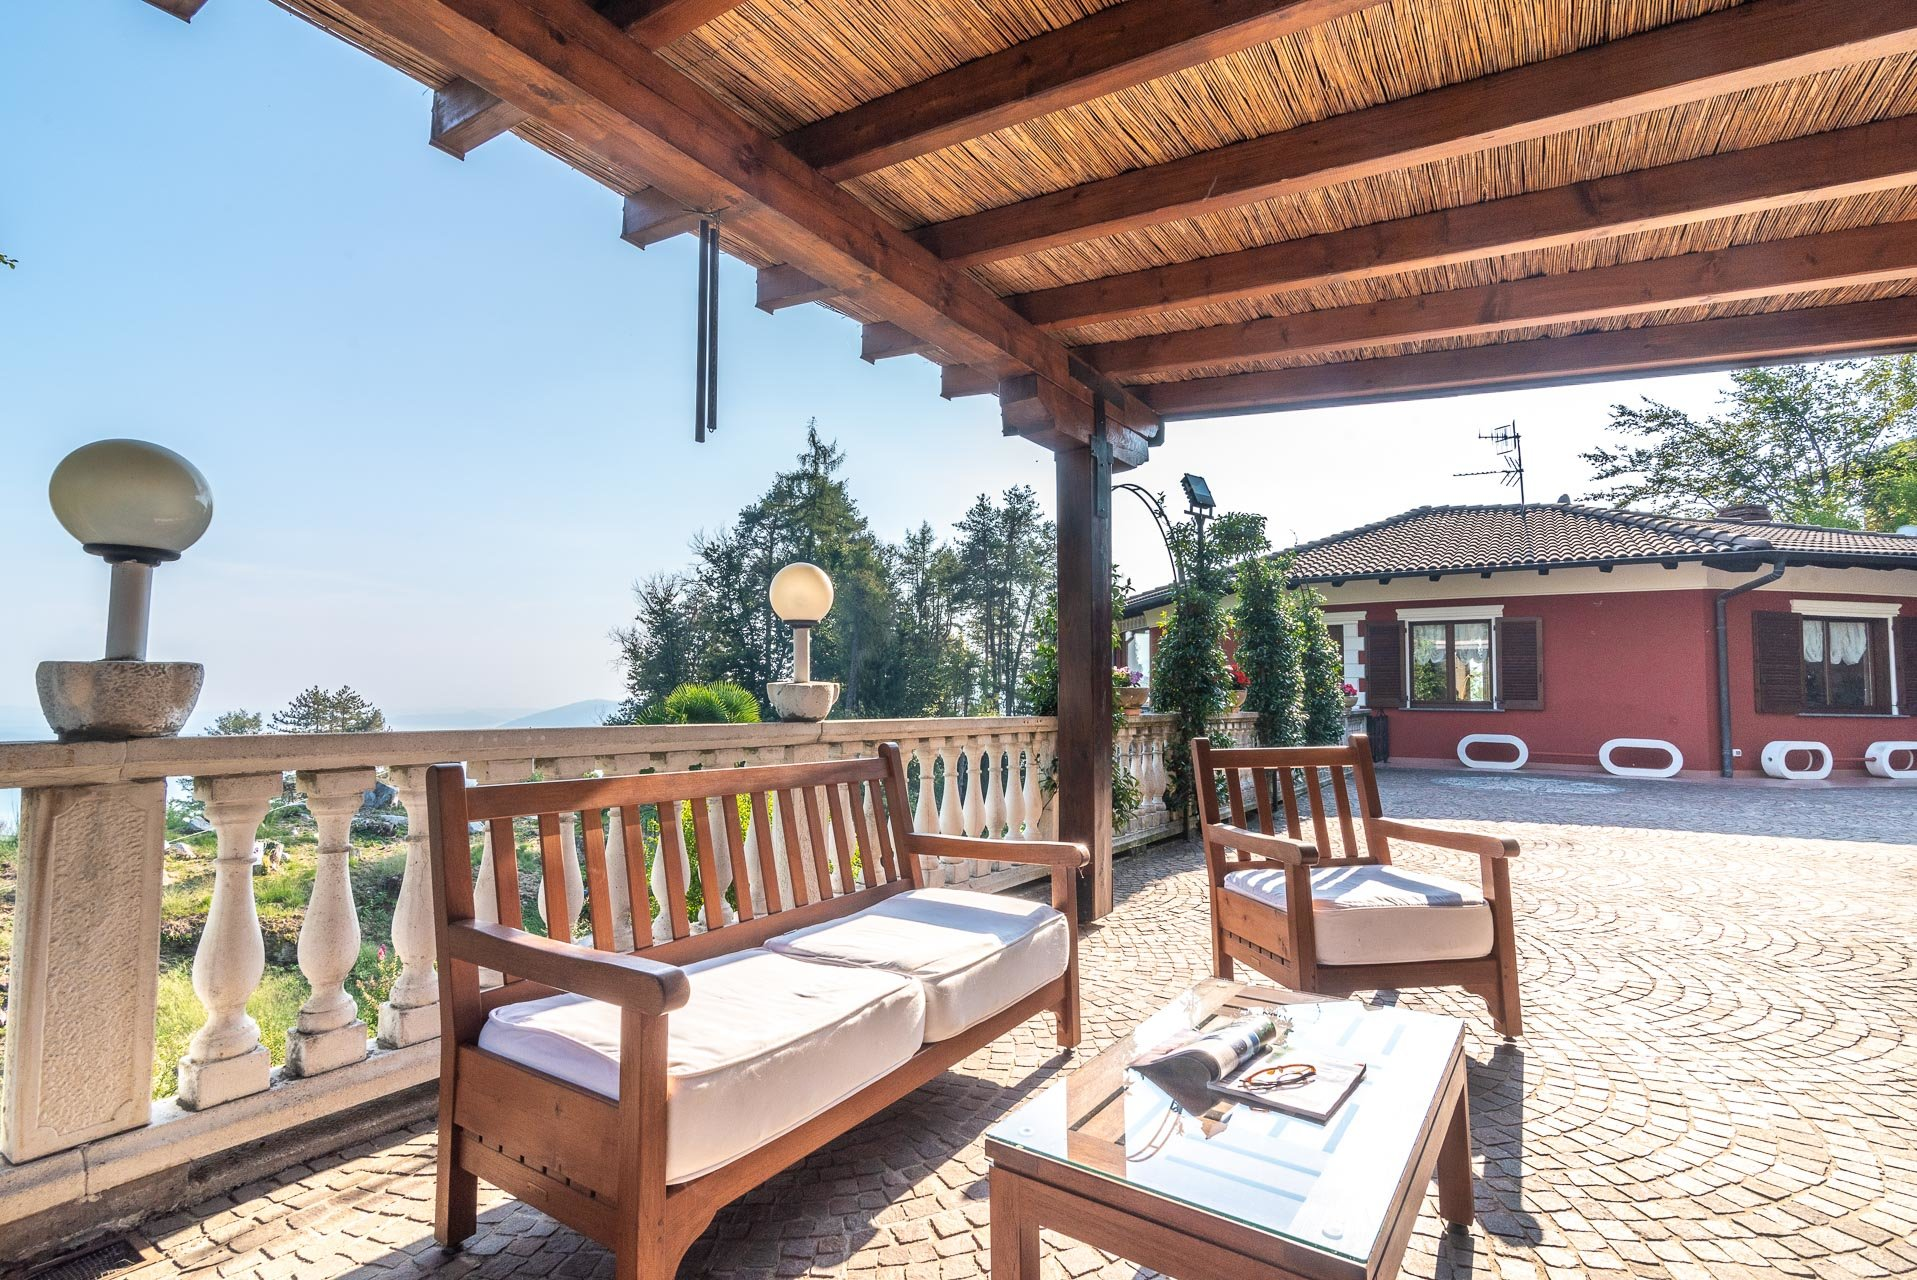 Villa for sale in Bee, with beautiful lake view